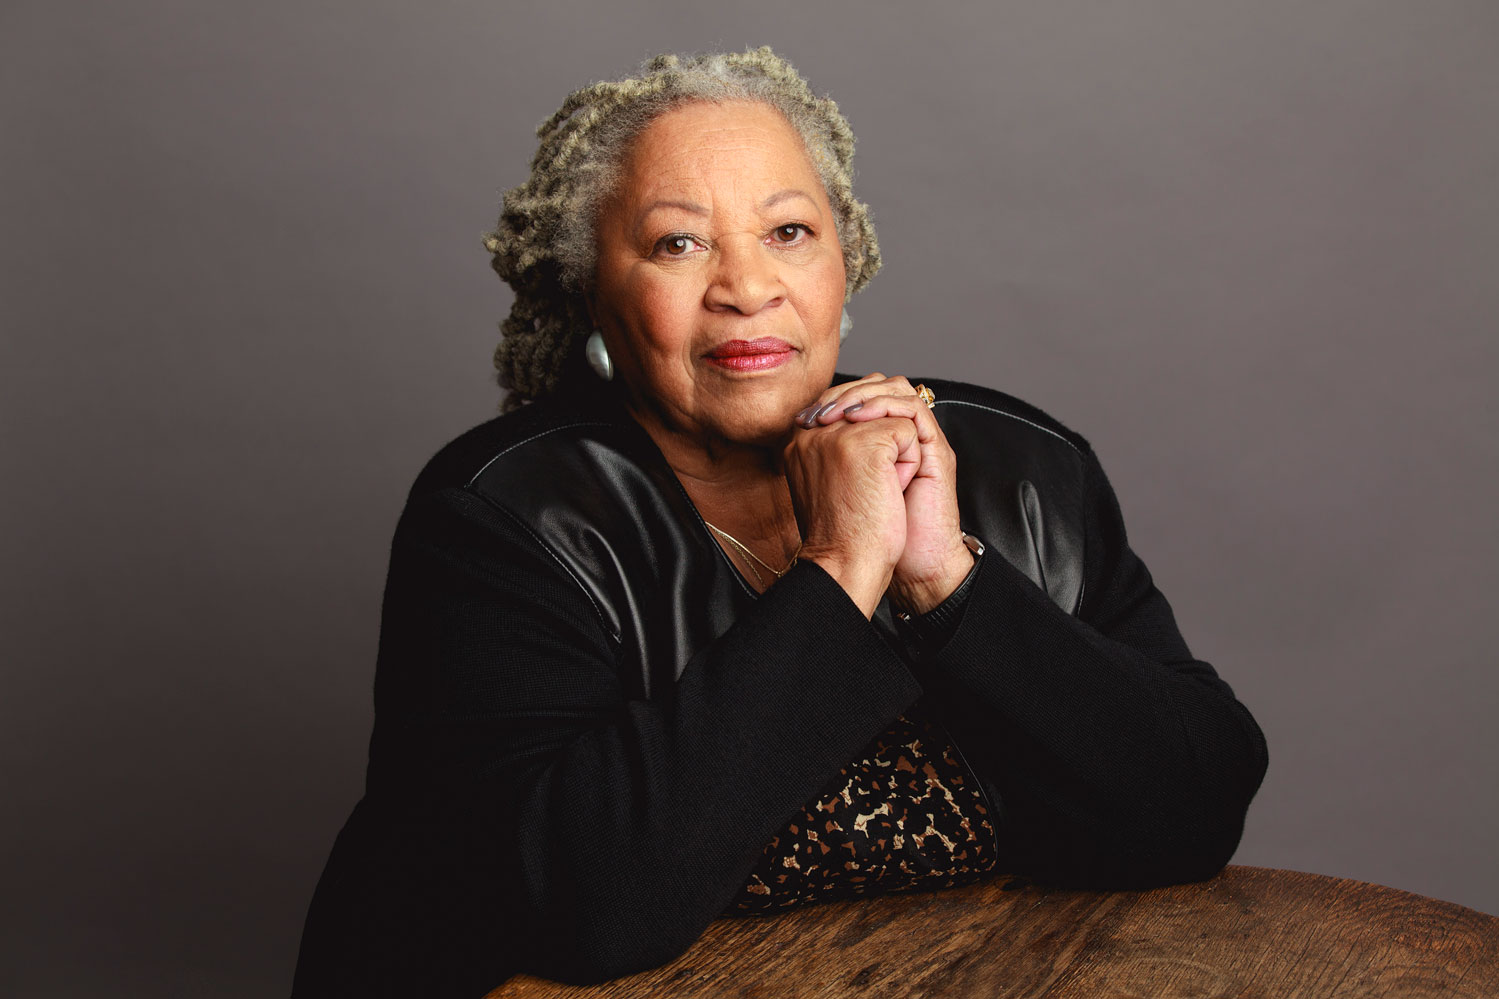 Toni Morrison The Pieces I am at Arena Theater